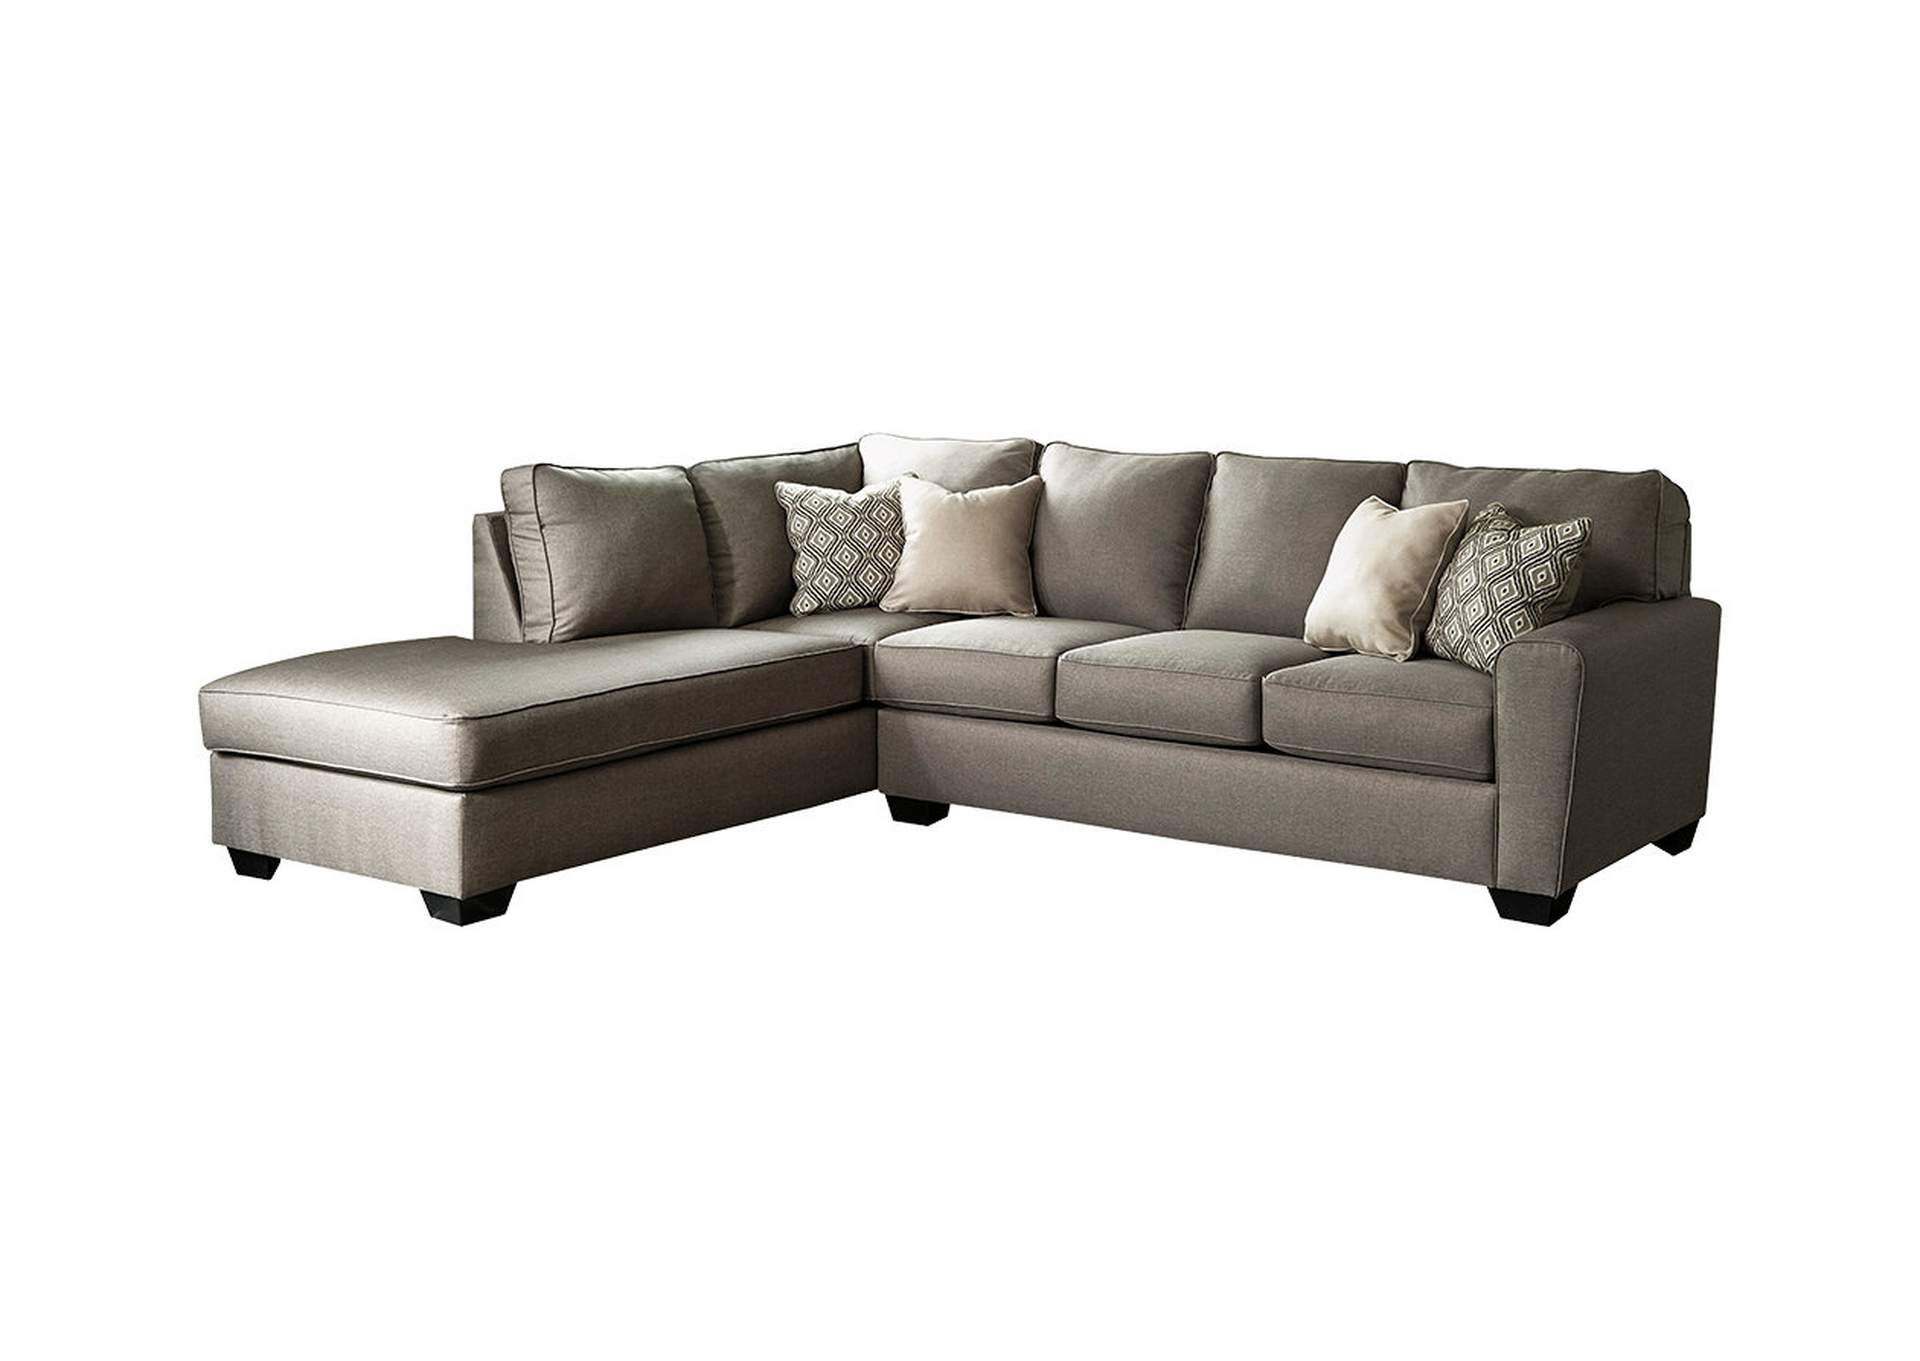 Calicho Cashmere LAF Sectional,Benchcraft